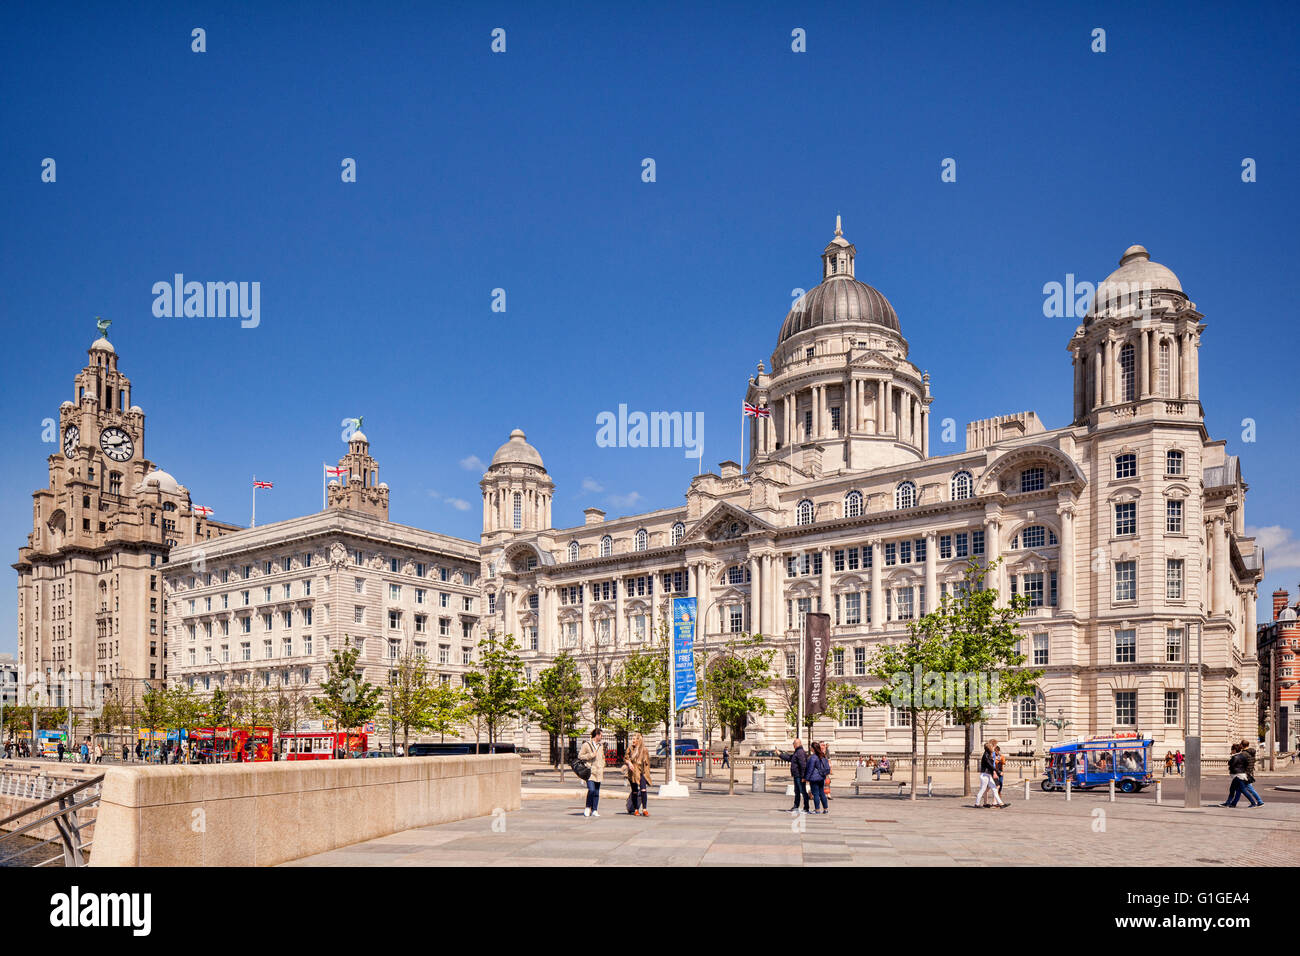 The 'Three Graces', historic buildings which dominate the Liverpool waterfront at Pier Head. They are the - Stock Image